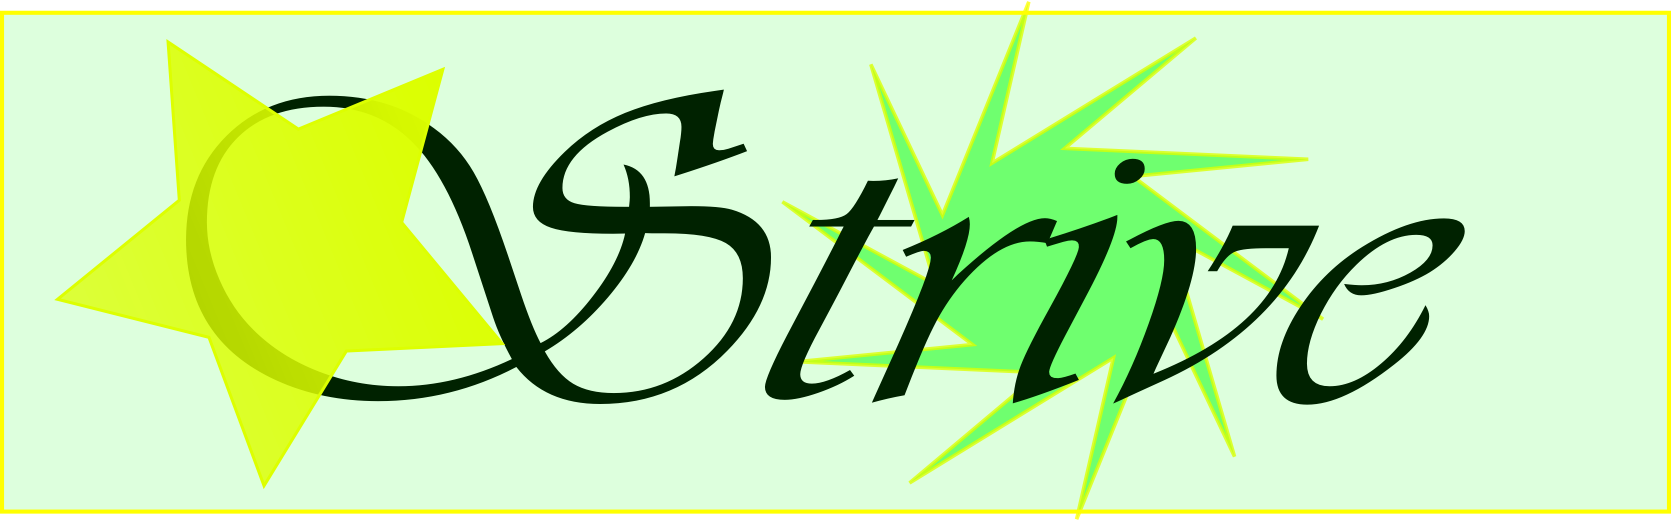 File:Strive.png - Wikimedia Commons